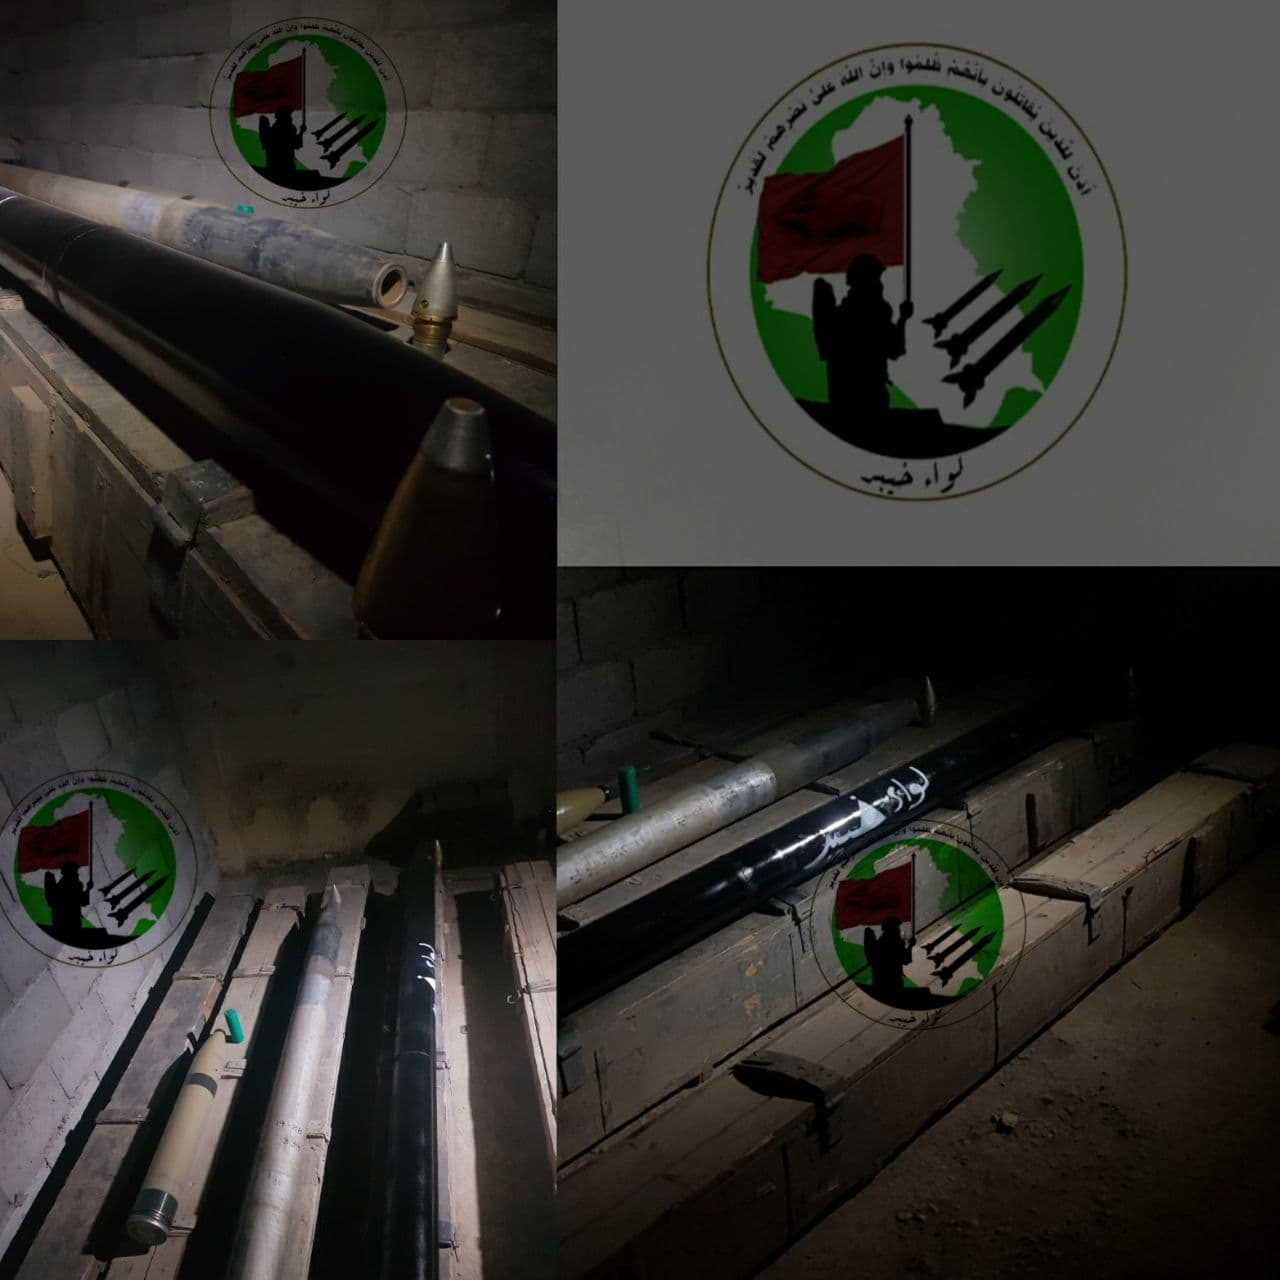 Iraqi Group Responsible For Recent Attack On Ain Assad Base Shows Off Iranian Rockets